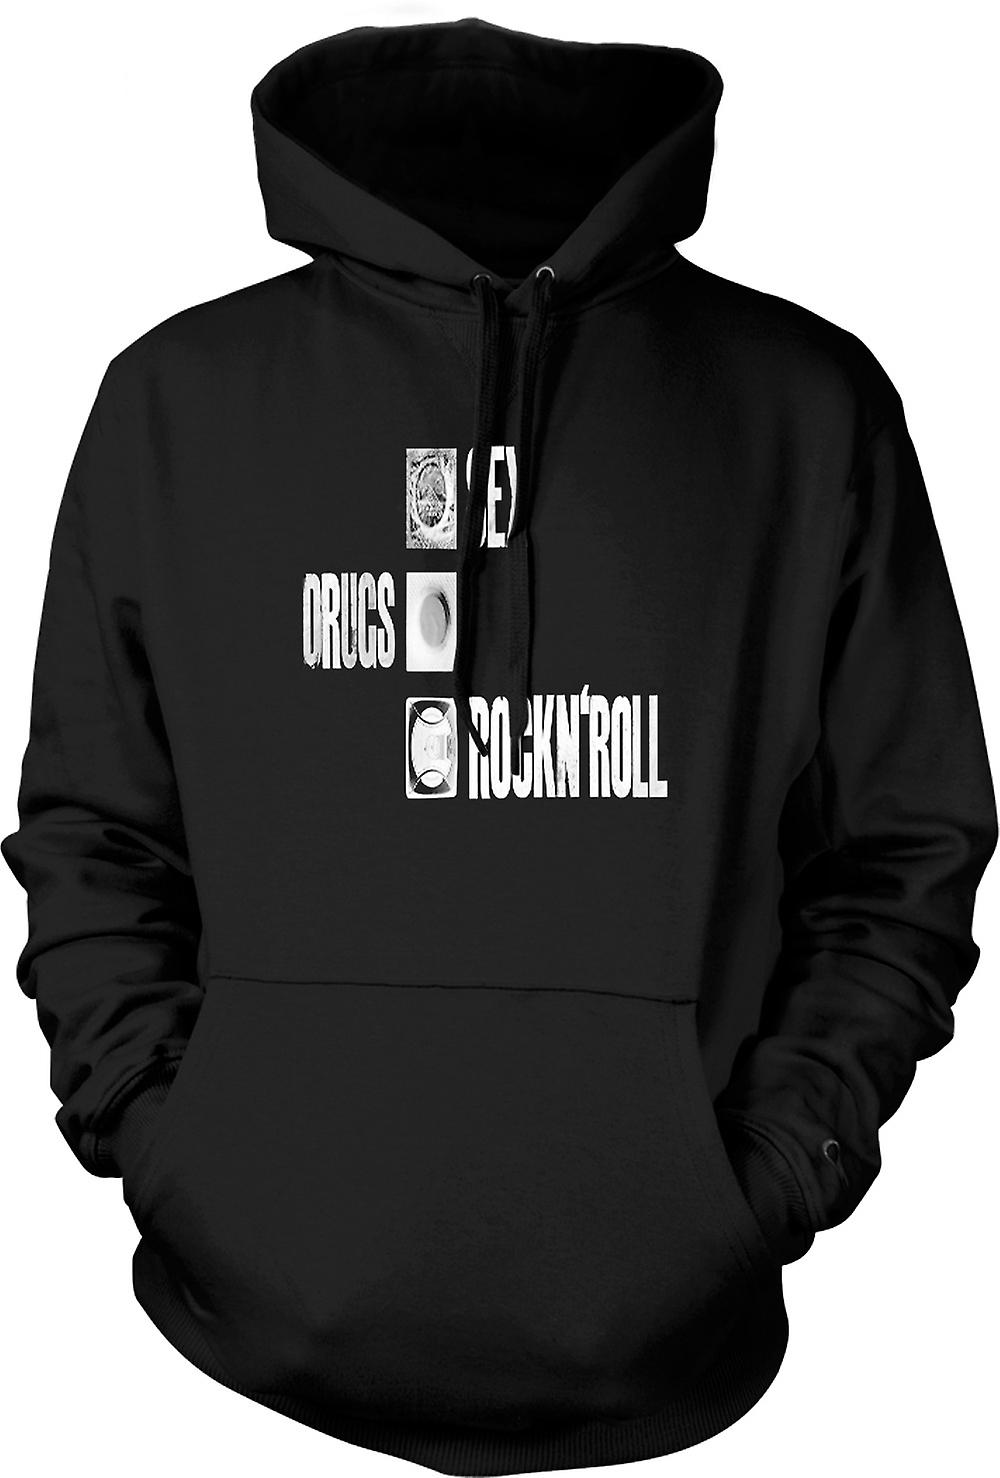 Mens Hoodie - Sex Drugs Rock n Roll - condoom